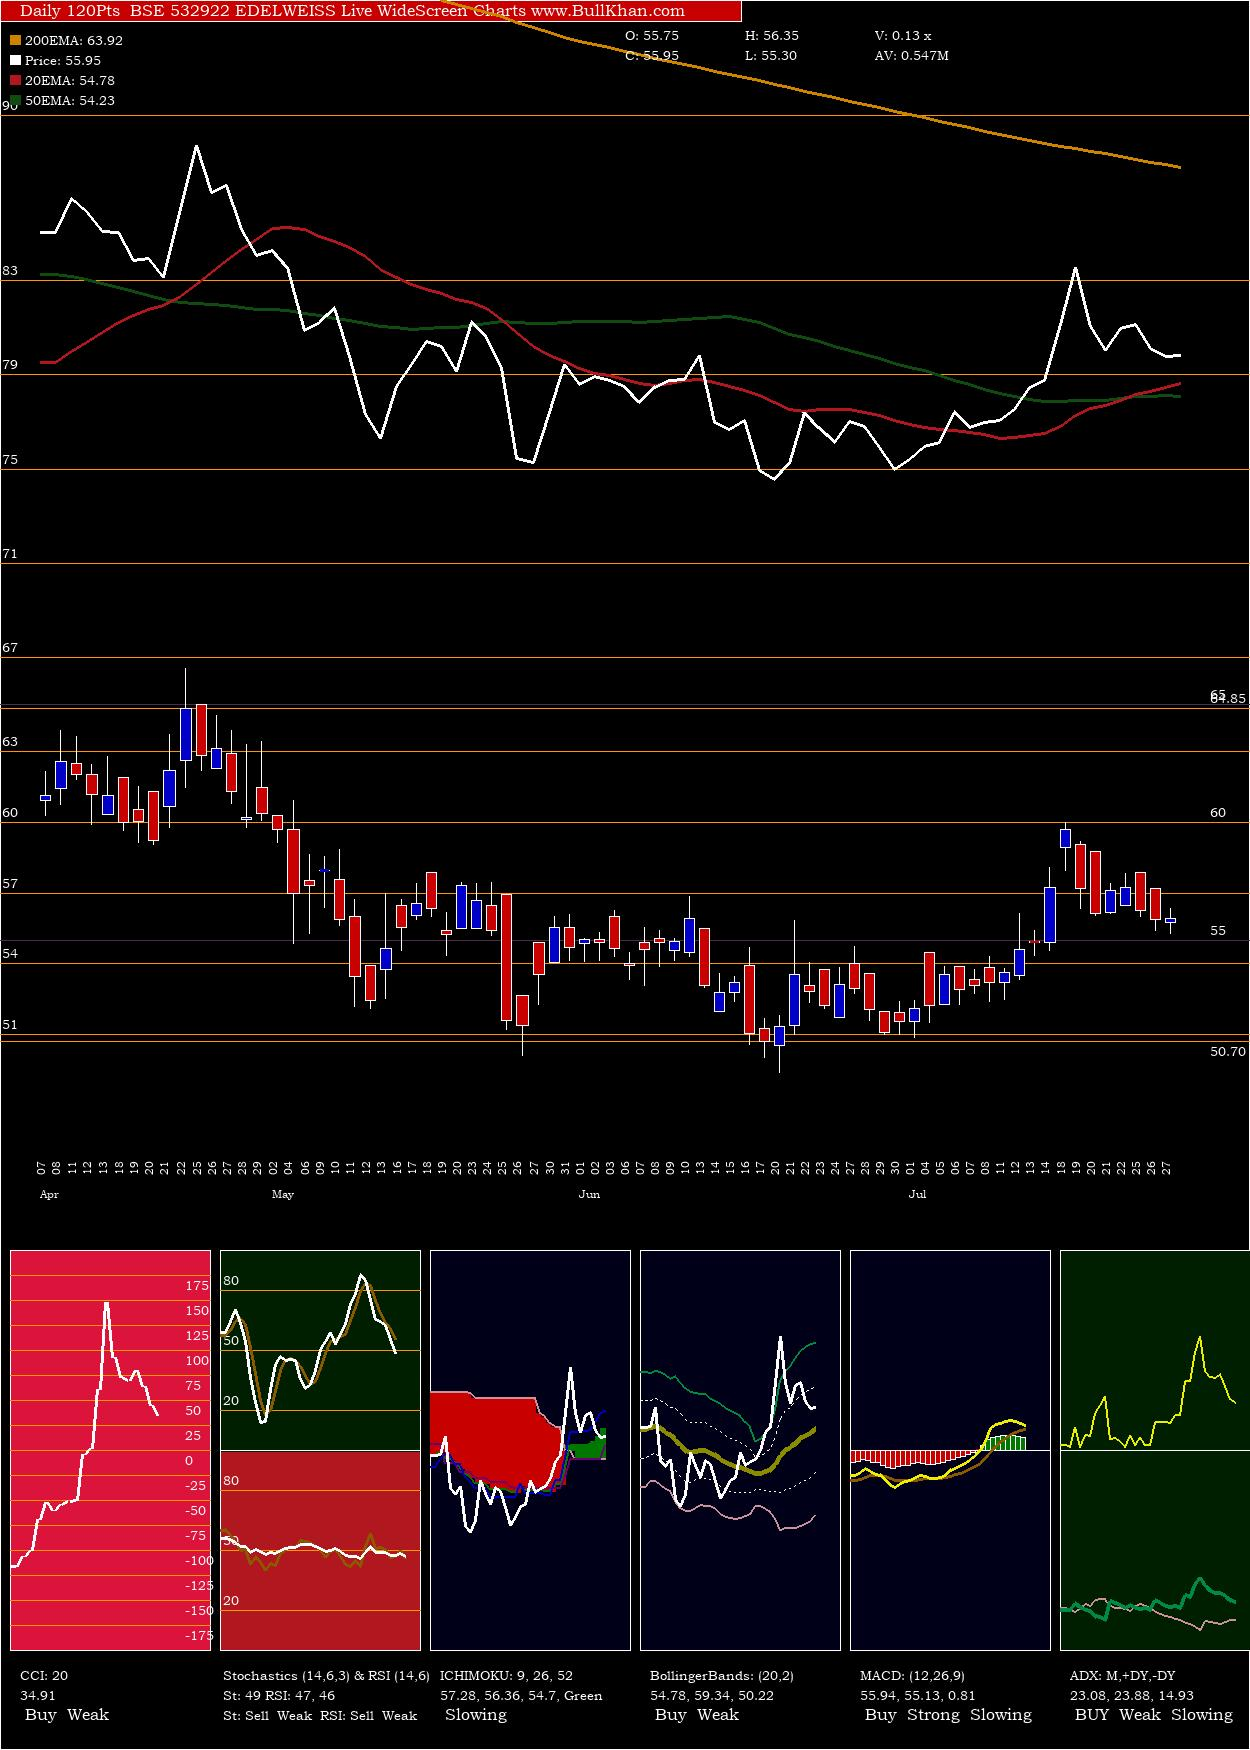 Edelweiss charts and indicators